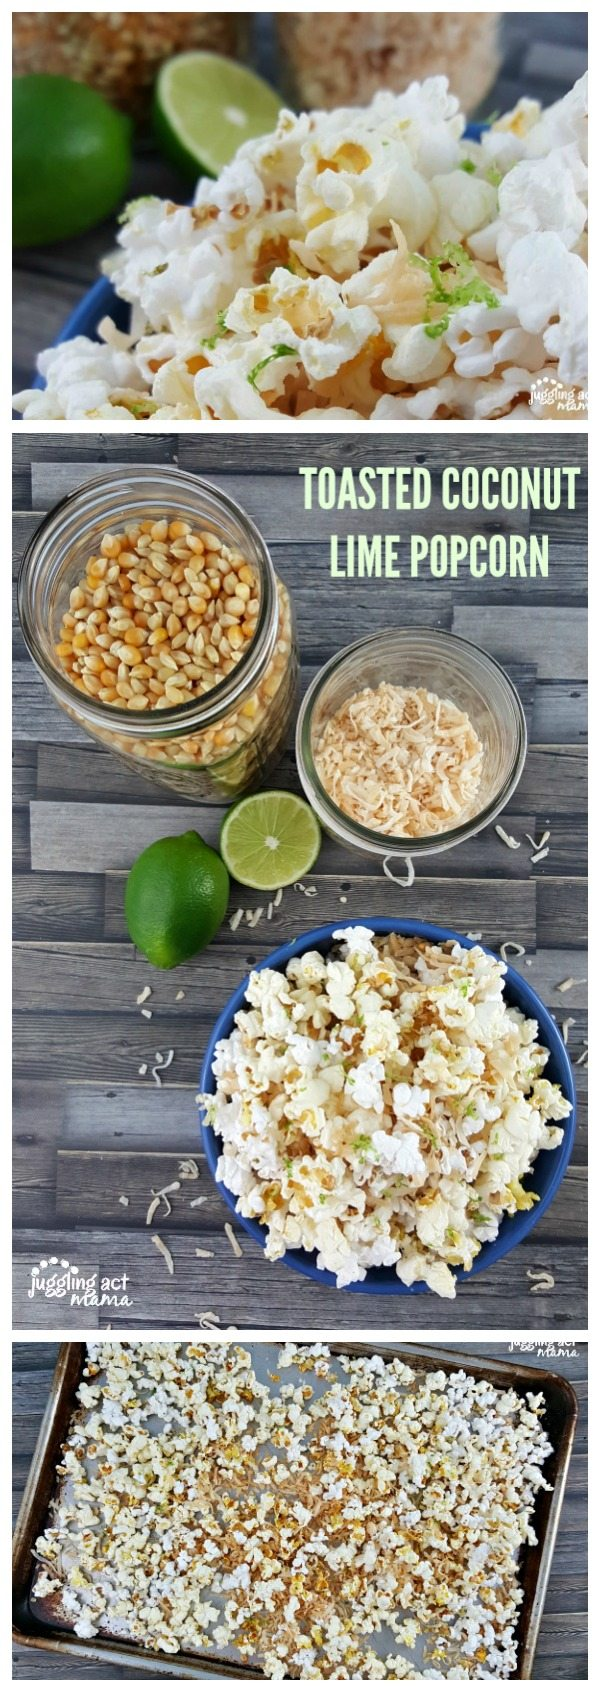 This Toasted Coconut Lime Popcorn will shake up your ho-hum popcorn routine #ad #Barleans #PopWithBarleans